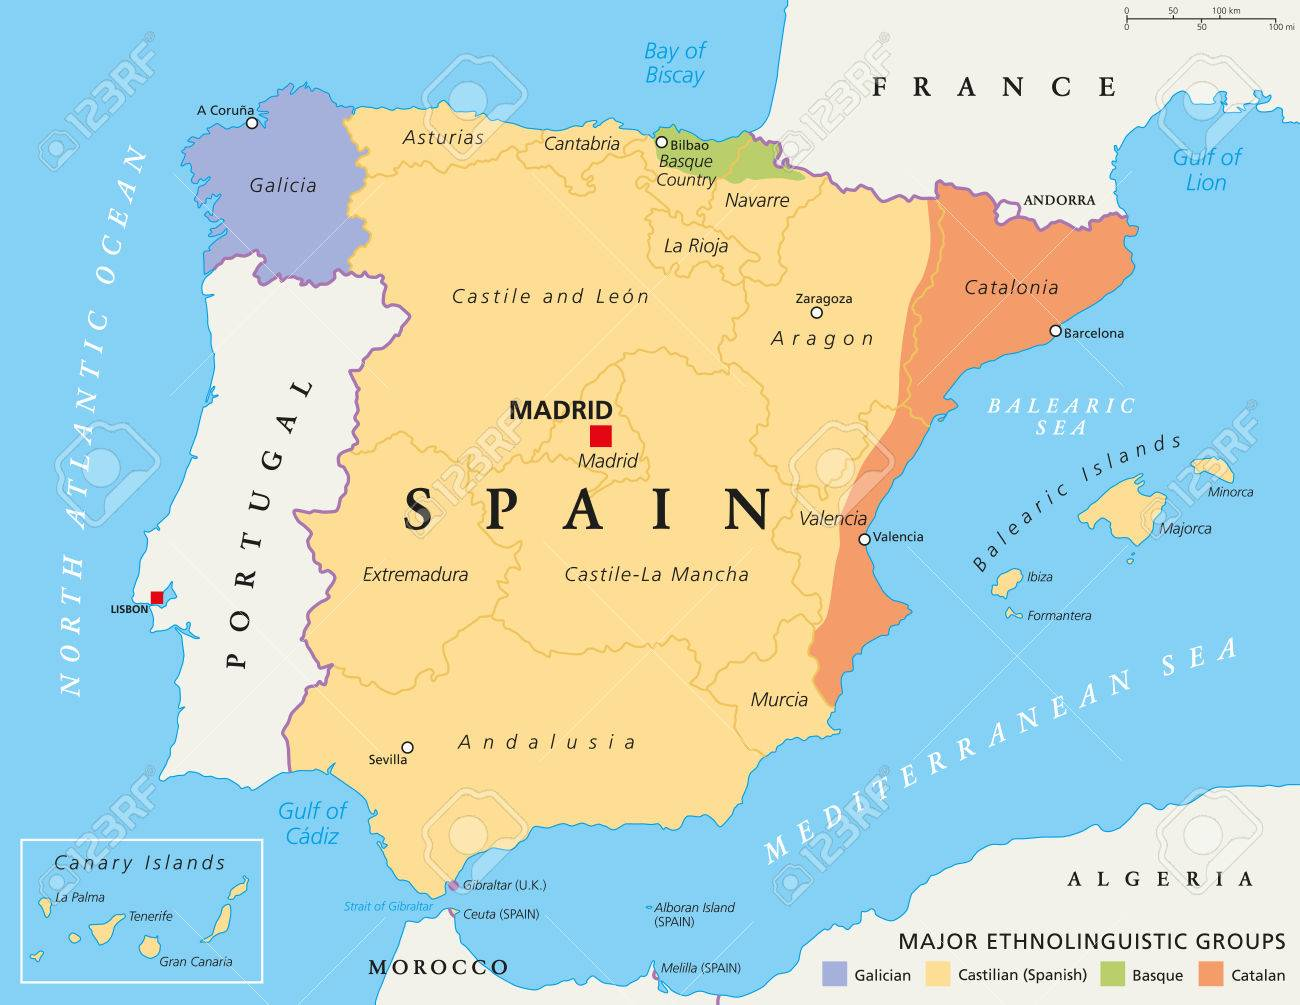 Basque Map Of Spain.Spain Autonomous Communities Map Administrative Divisions With